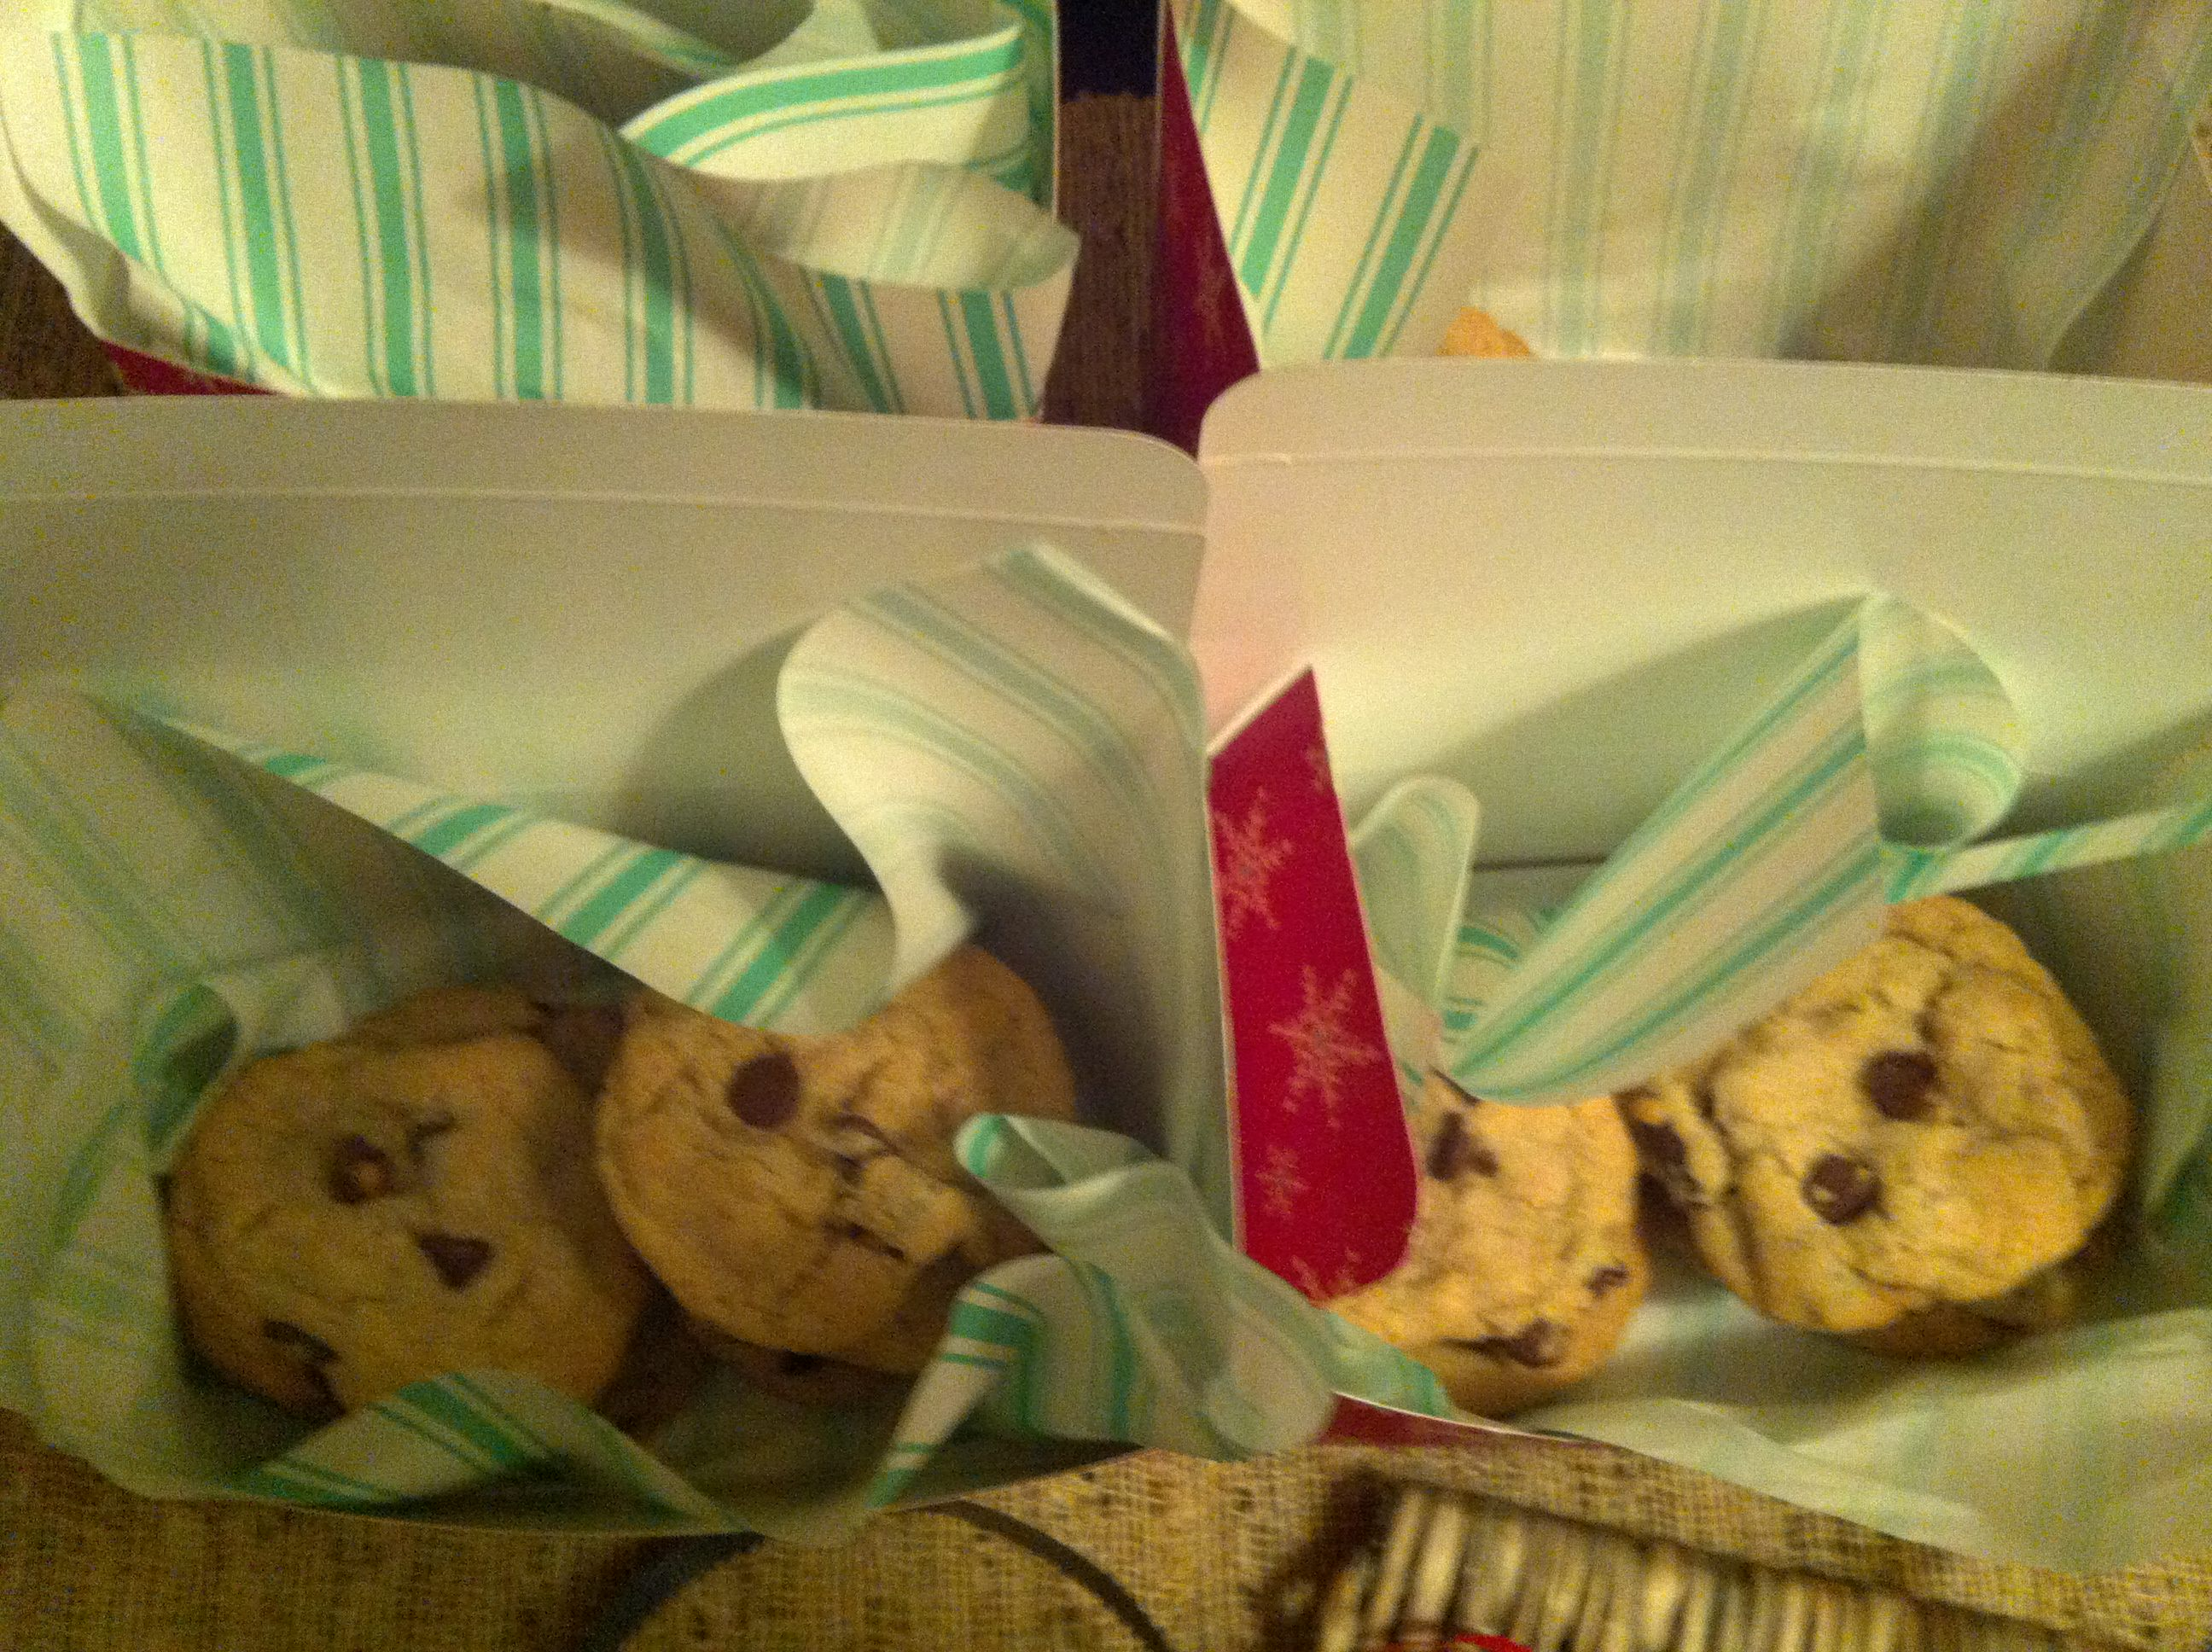 packed up to ship! Double Chip Chocolate Chunk Cookies